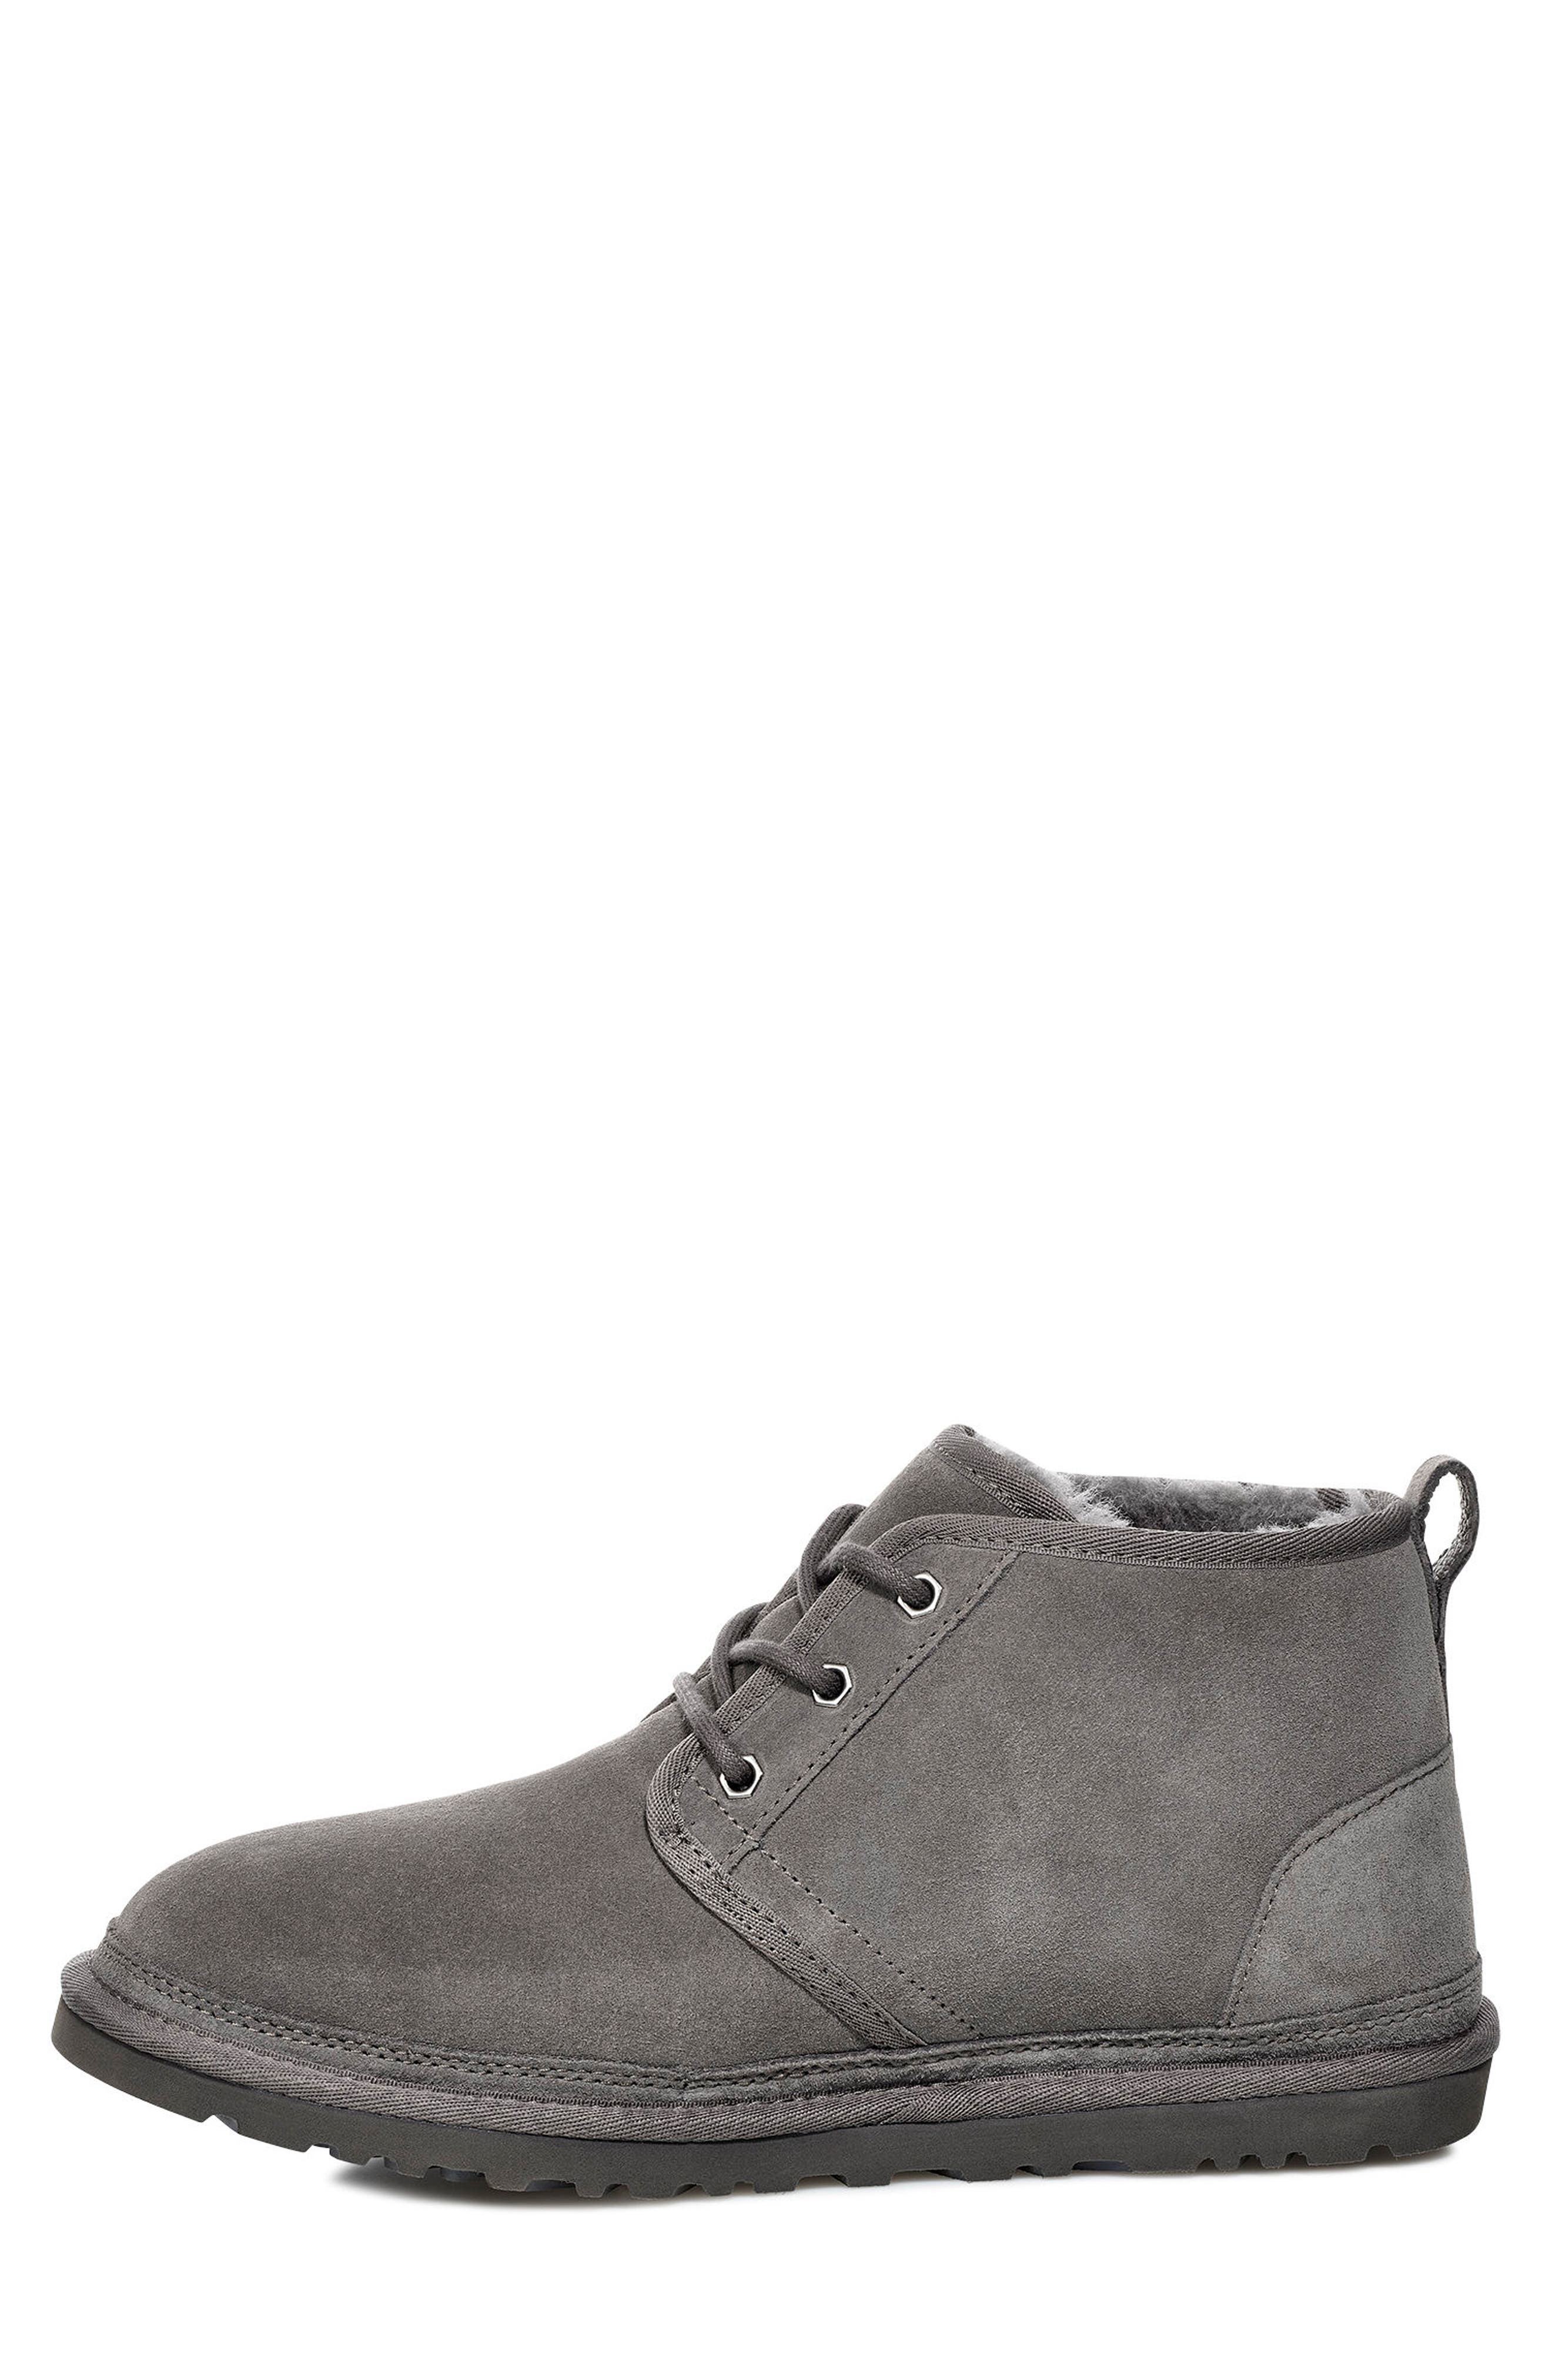 Neumel Chukka Boot,                             Alternate thumbnail 3, color,                             CHARCOAL SUEDE